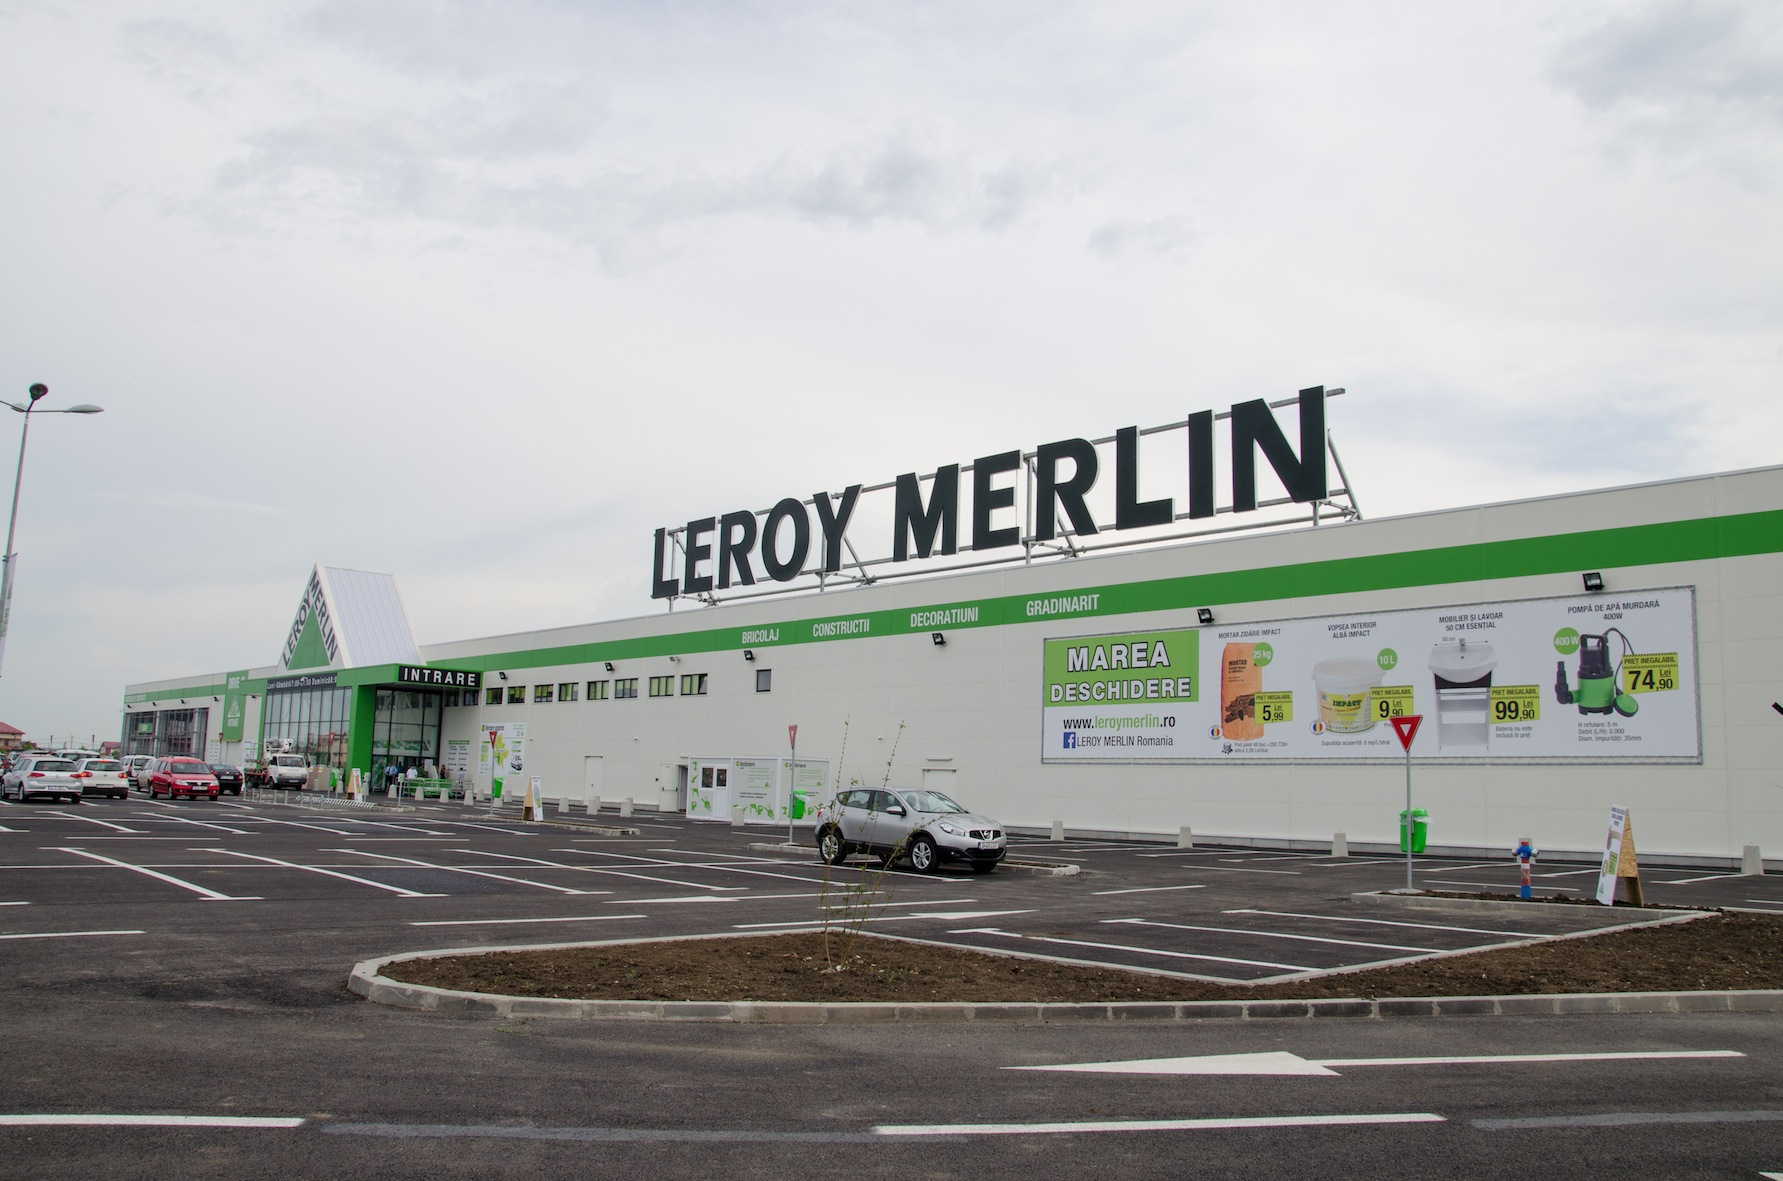 leroy merlin opens second store in cluj napoca business. Black Bedroom Furniture Sets. Home Design Ideas